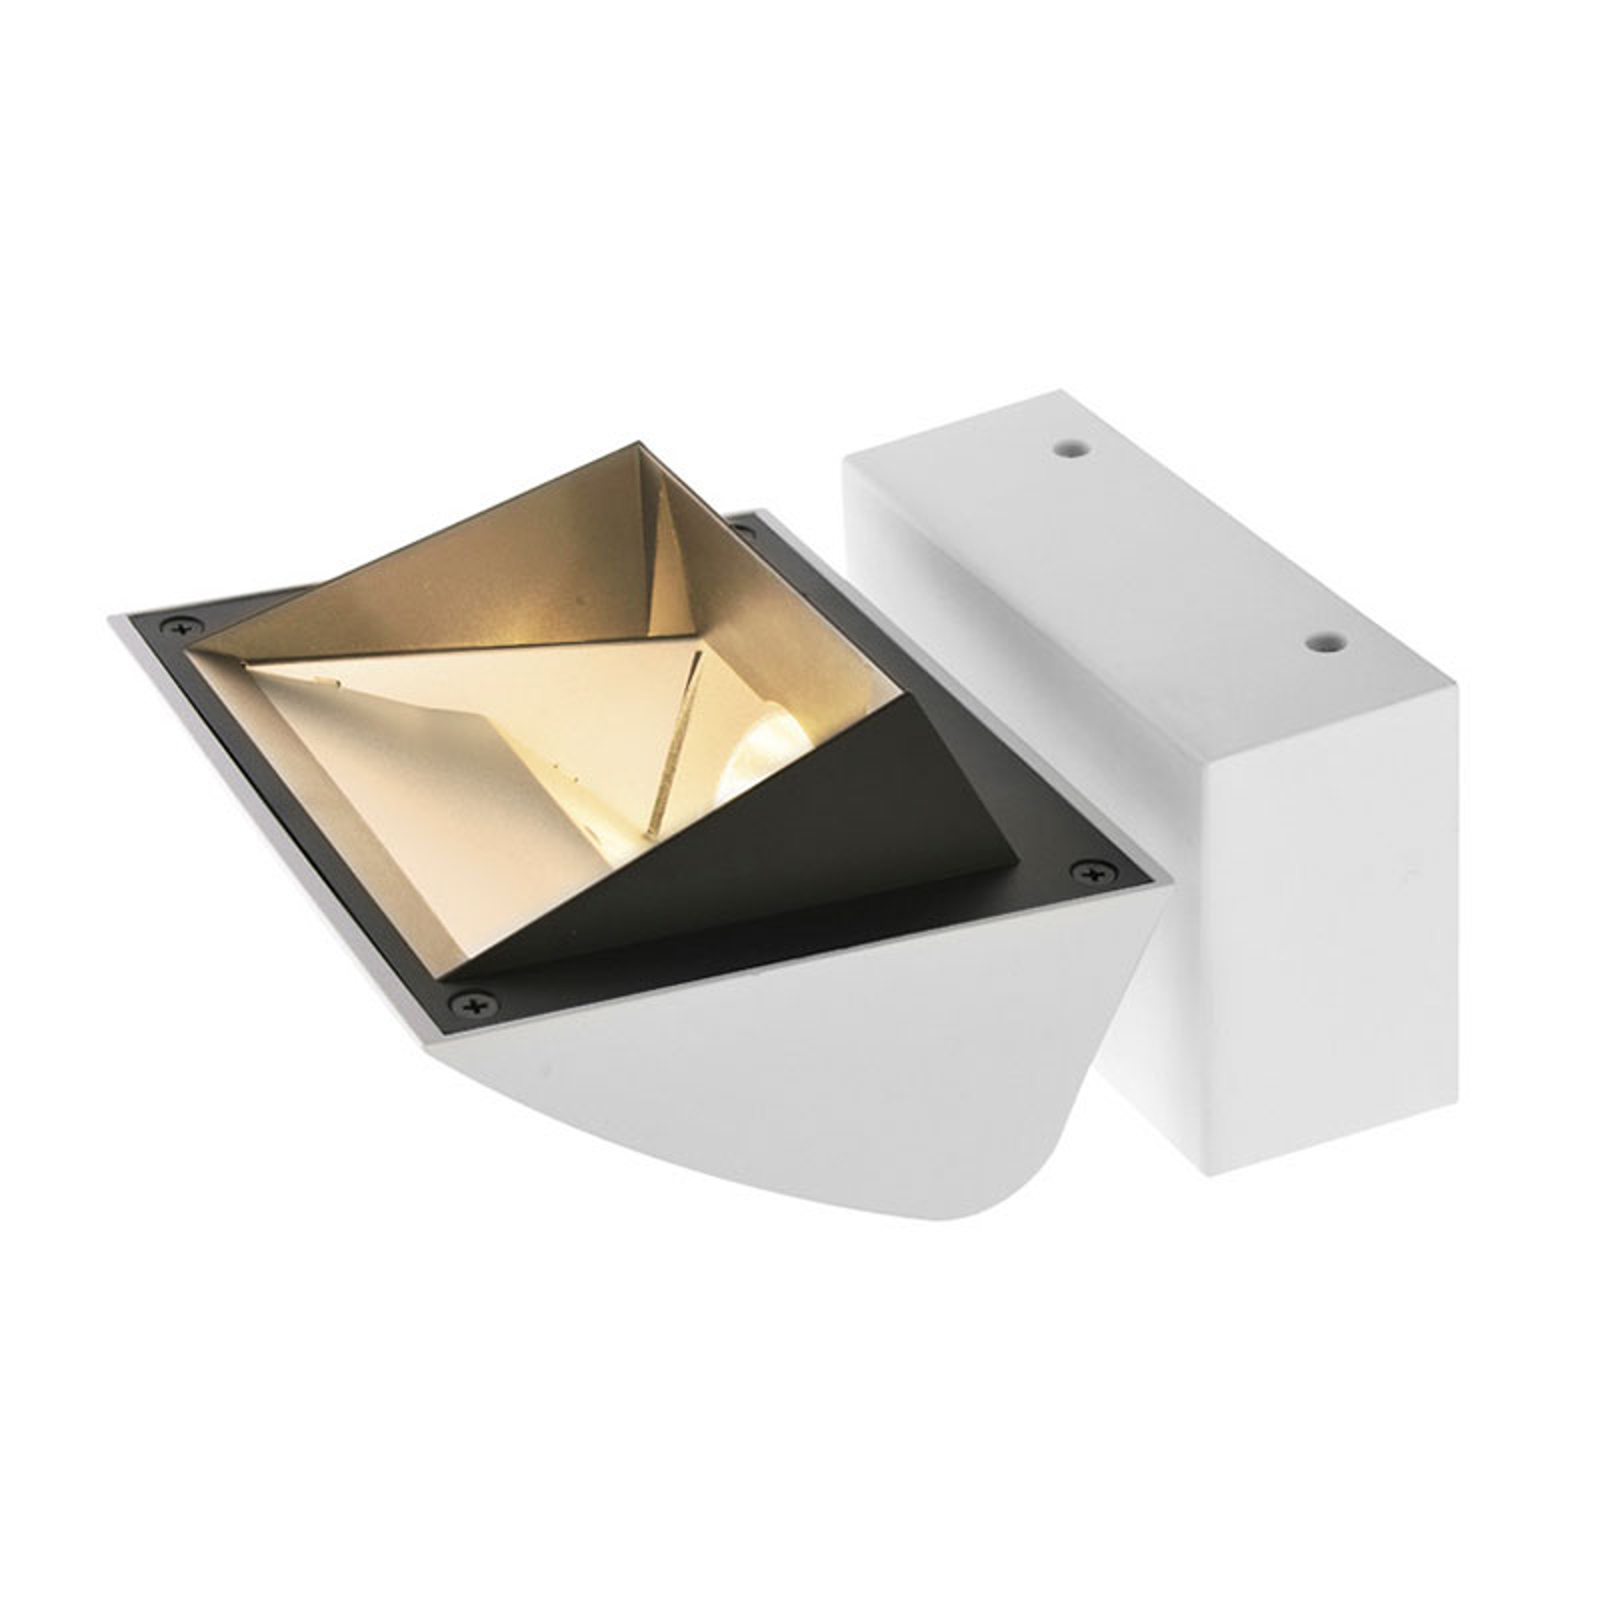 SLV Merado Flood applique LED 4 000 K blanche